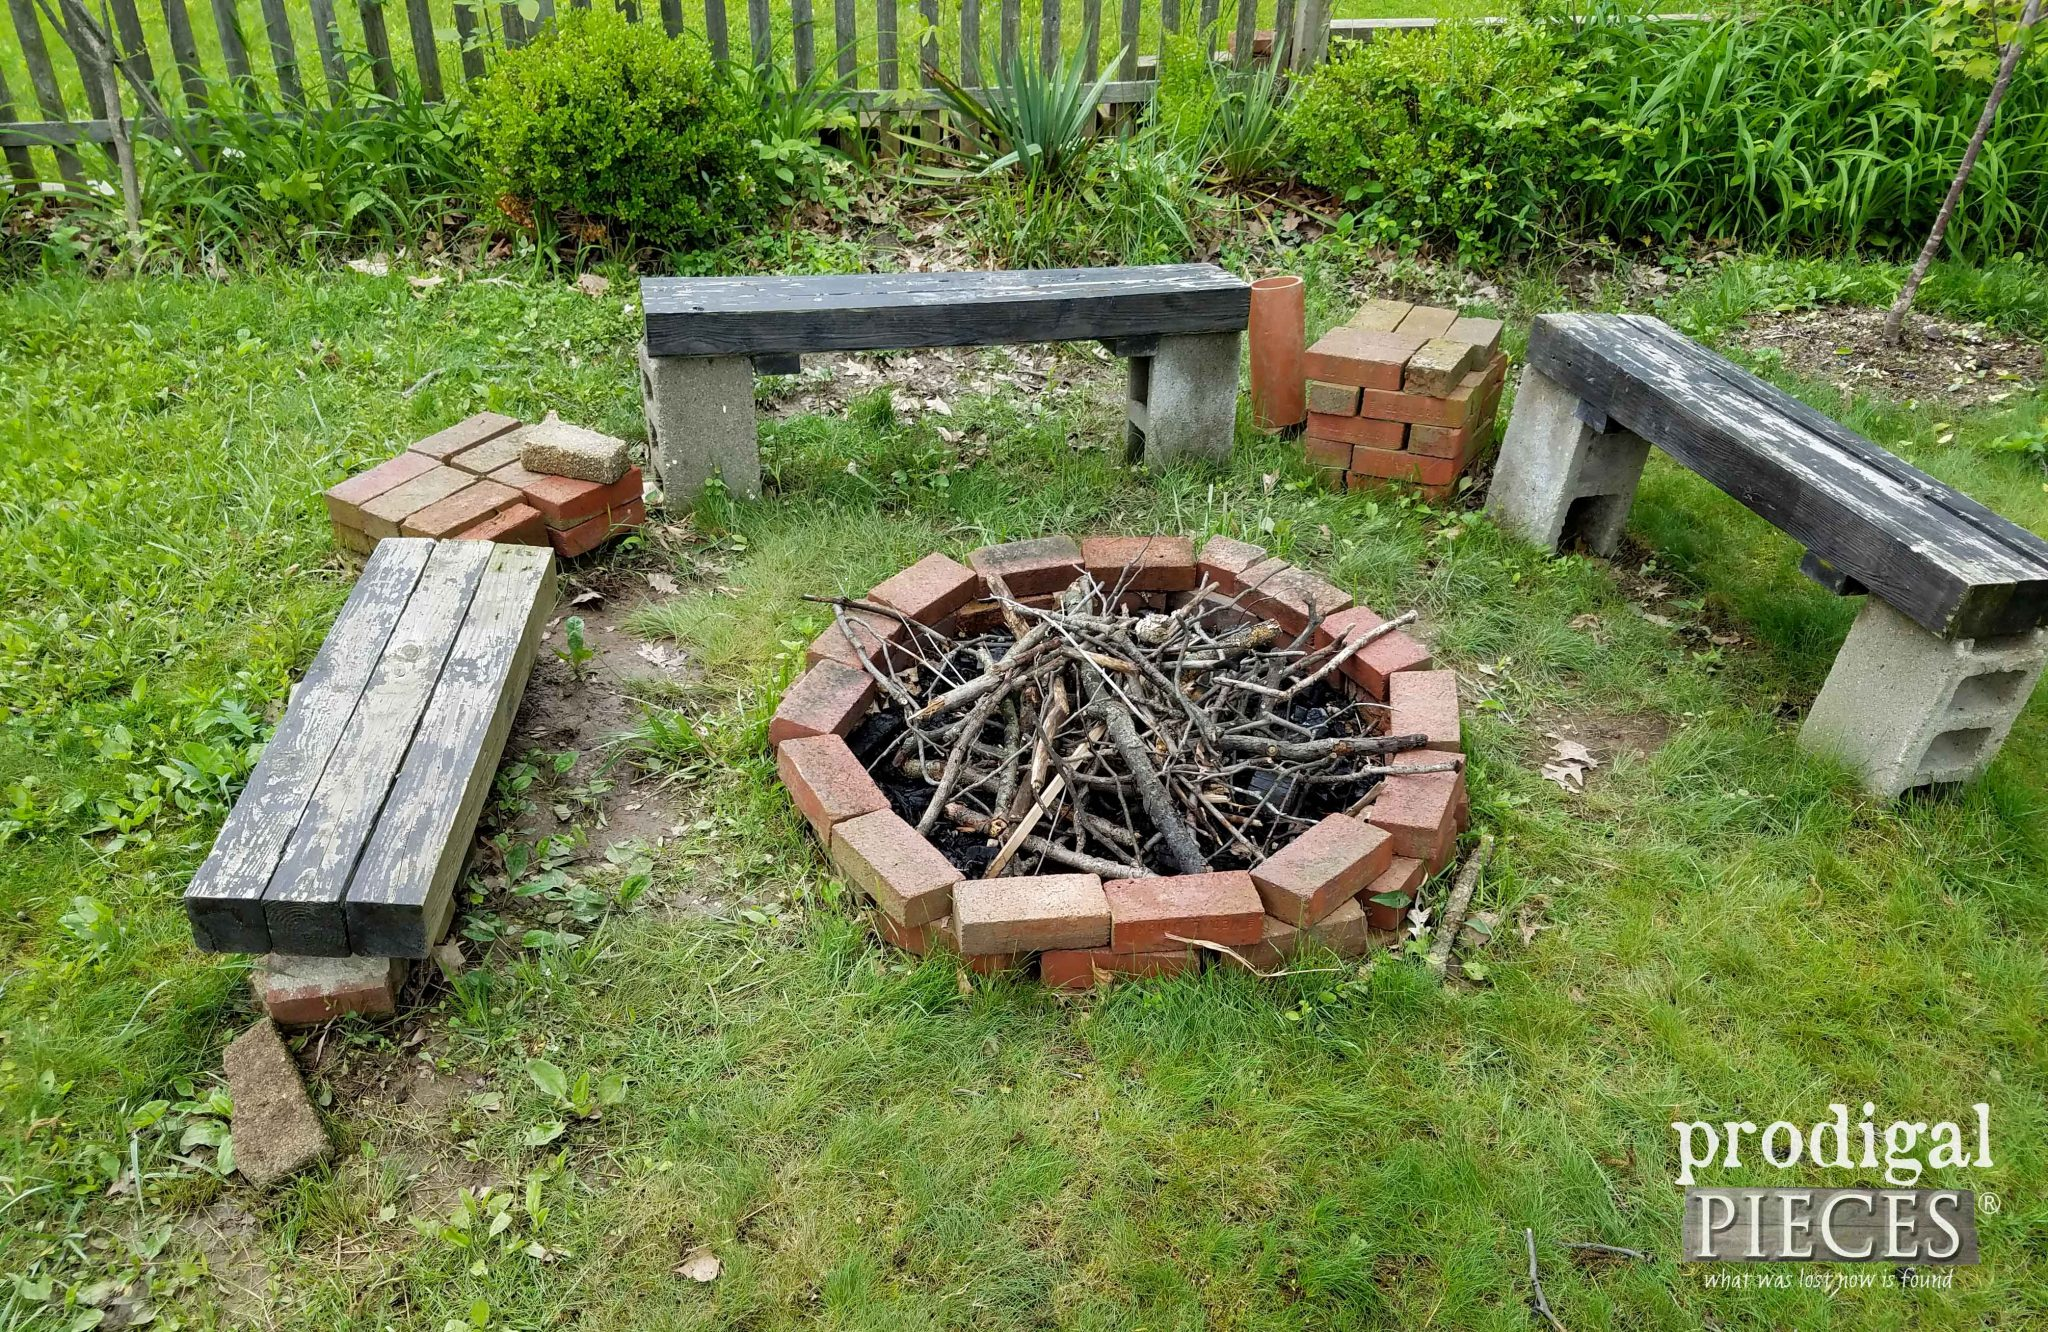 Top View of Messy Fire Pit | prodigalpieces.com